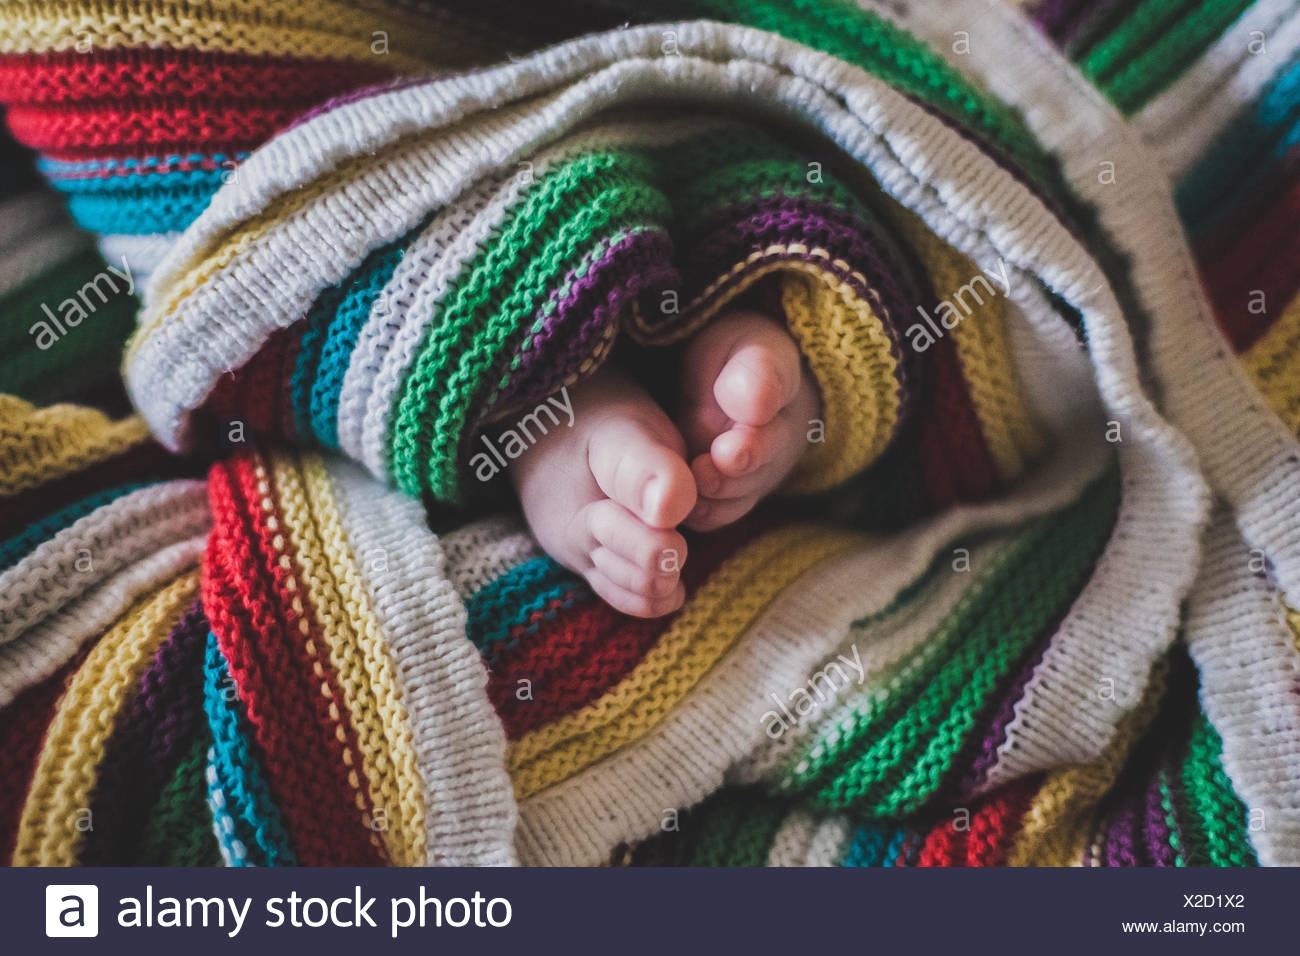 Close-up of baby's feet wrapped in a multi-colored blanket Stock Photo